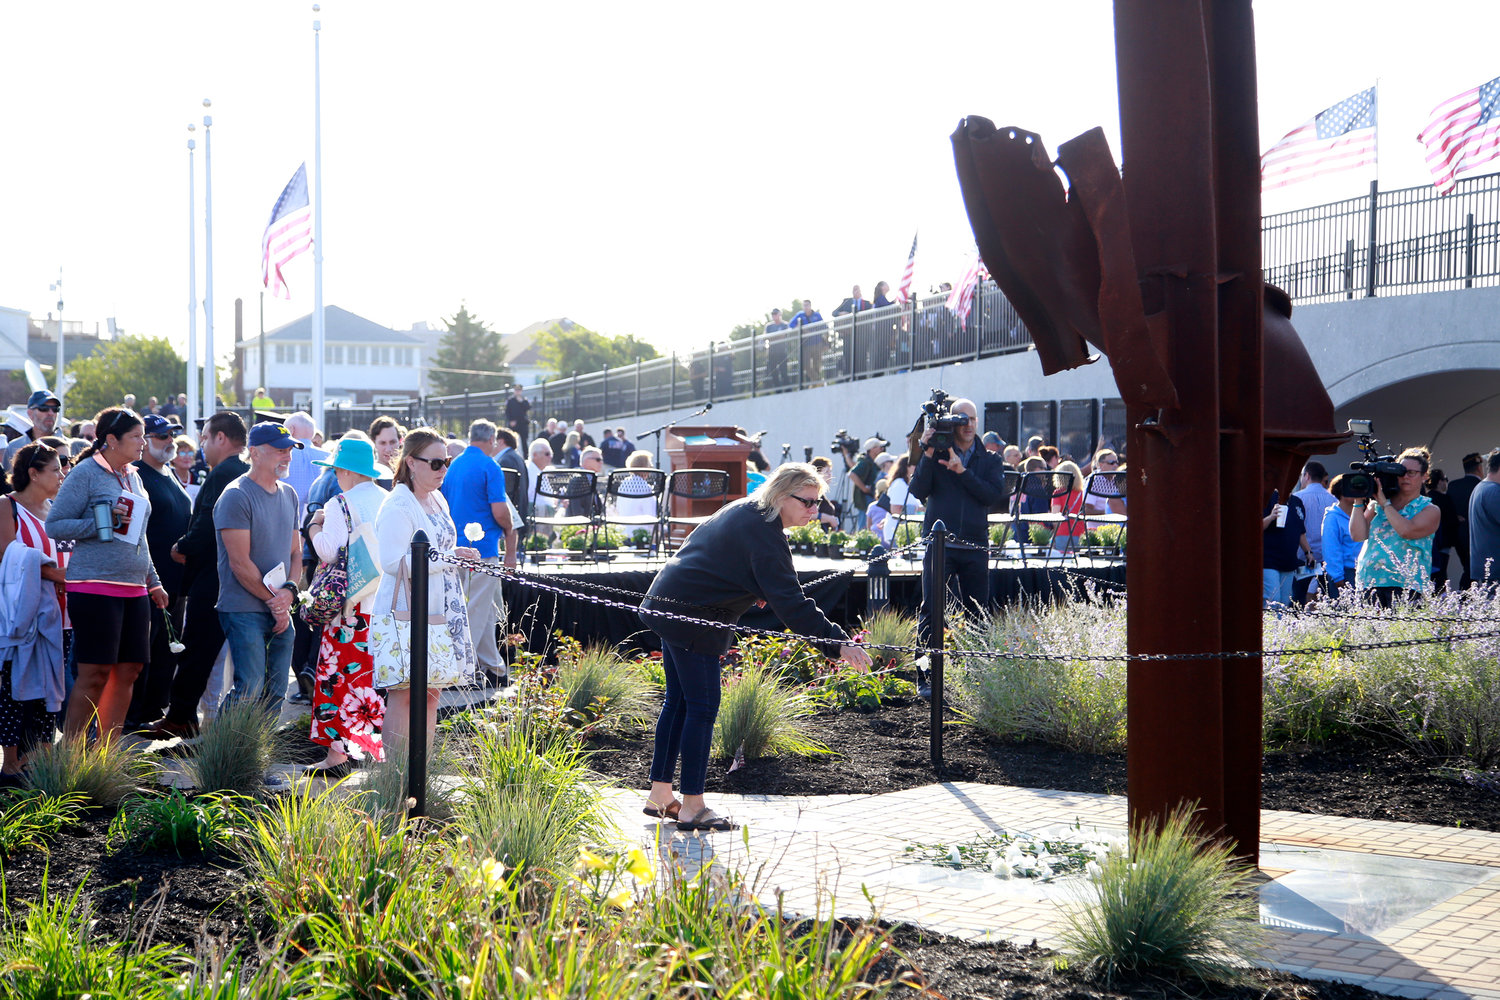 Mourners lined up to place white carnations around a 30-foot-tall steel beam that was recovered from the World Trade Center site at the Town of Hempstead 9/11 memorial in Lido Beach.